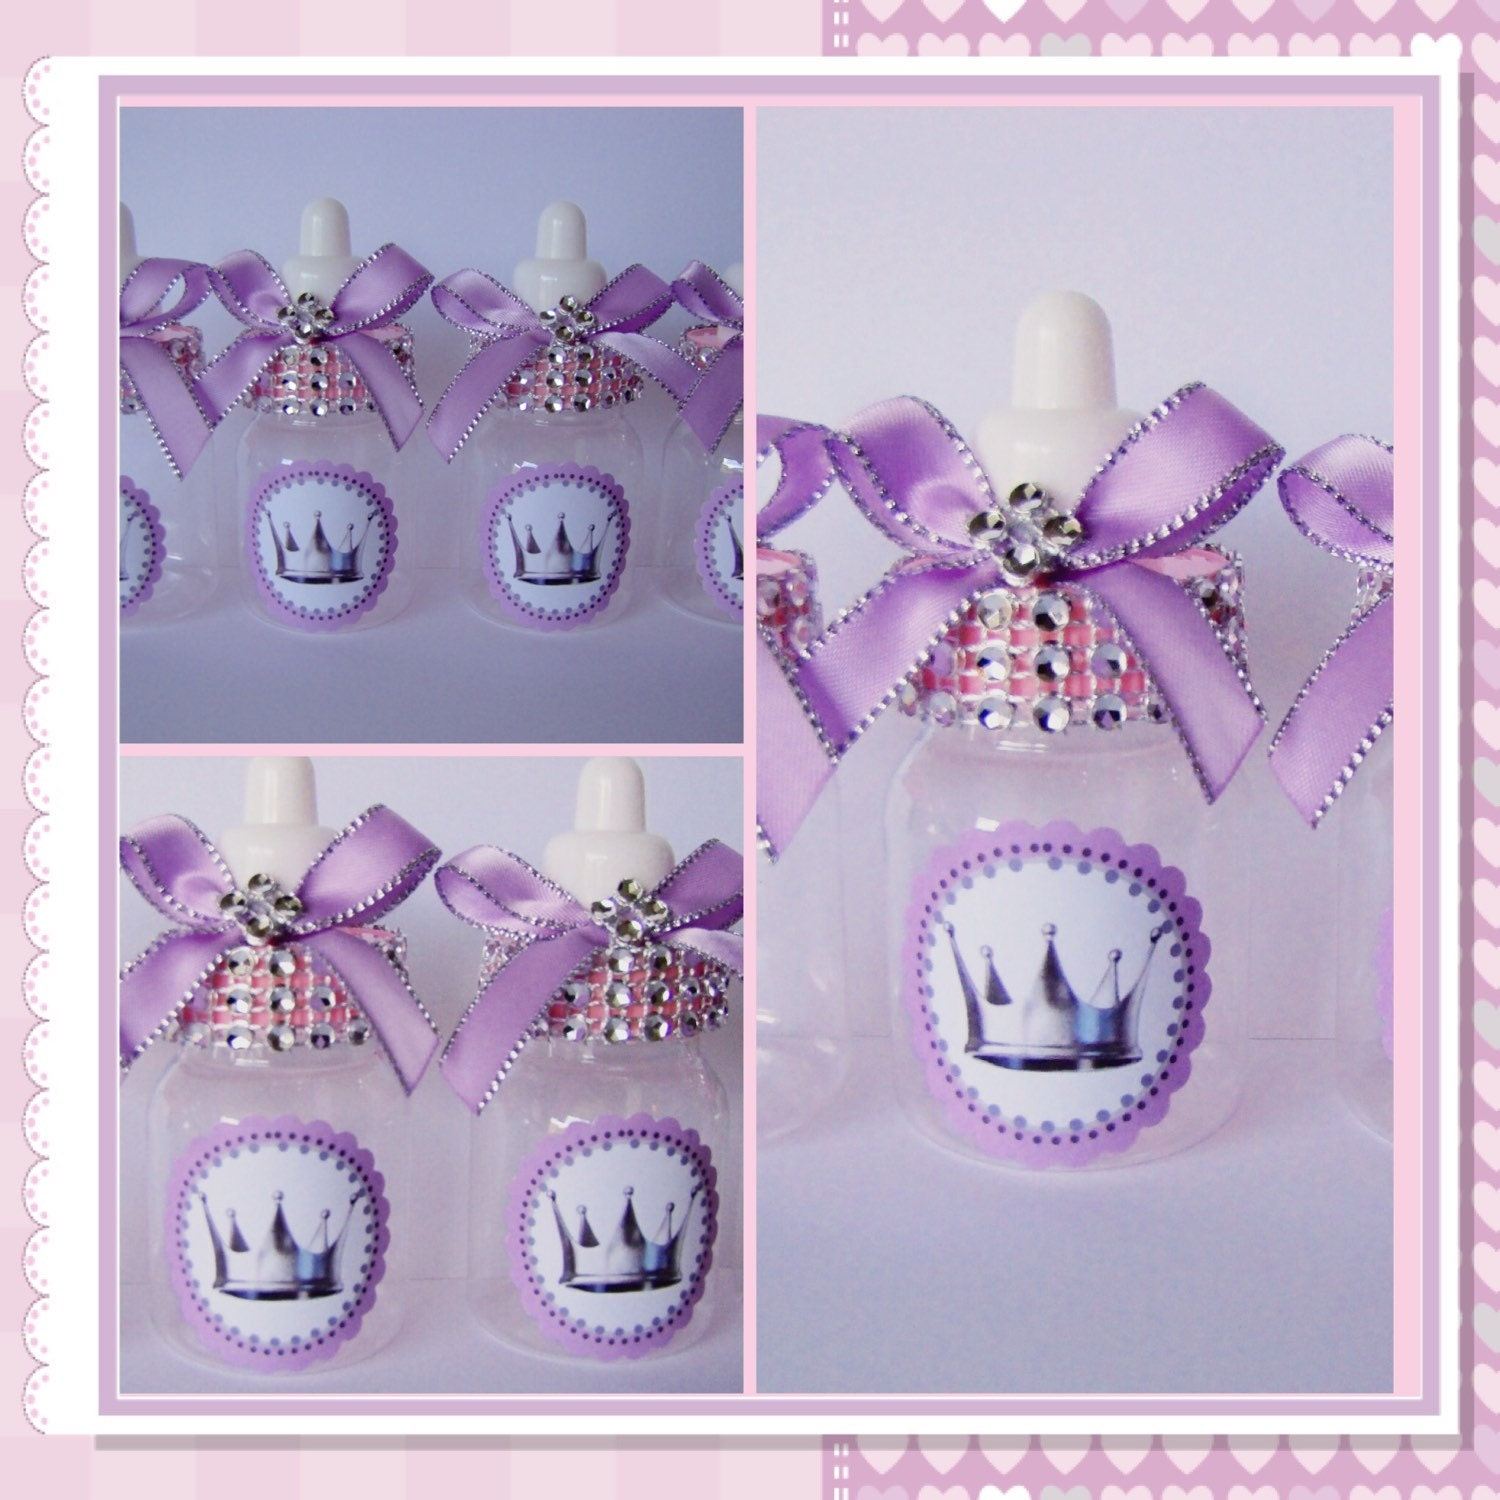 12 Little Princess Baby Shower Favors By Marshmallowfavors